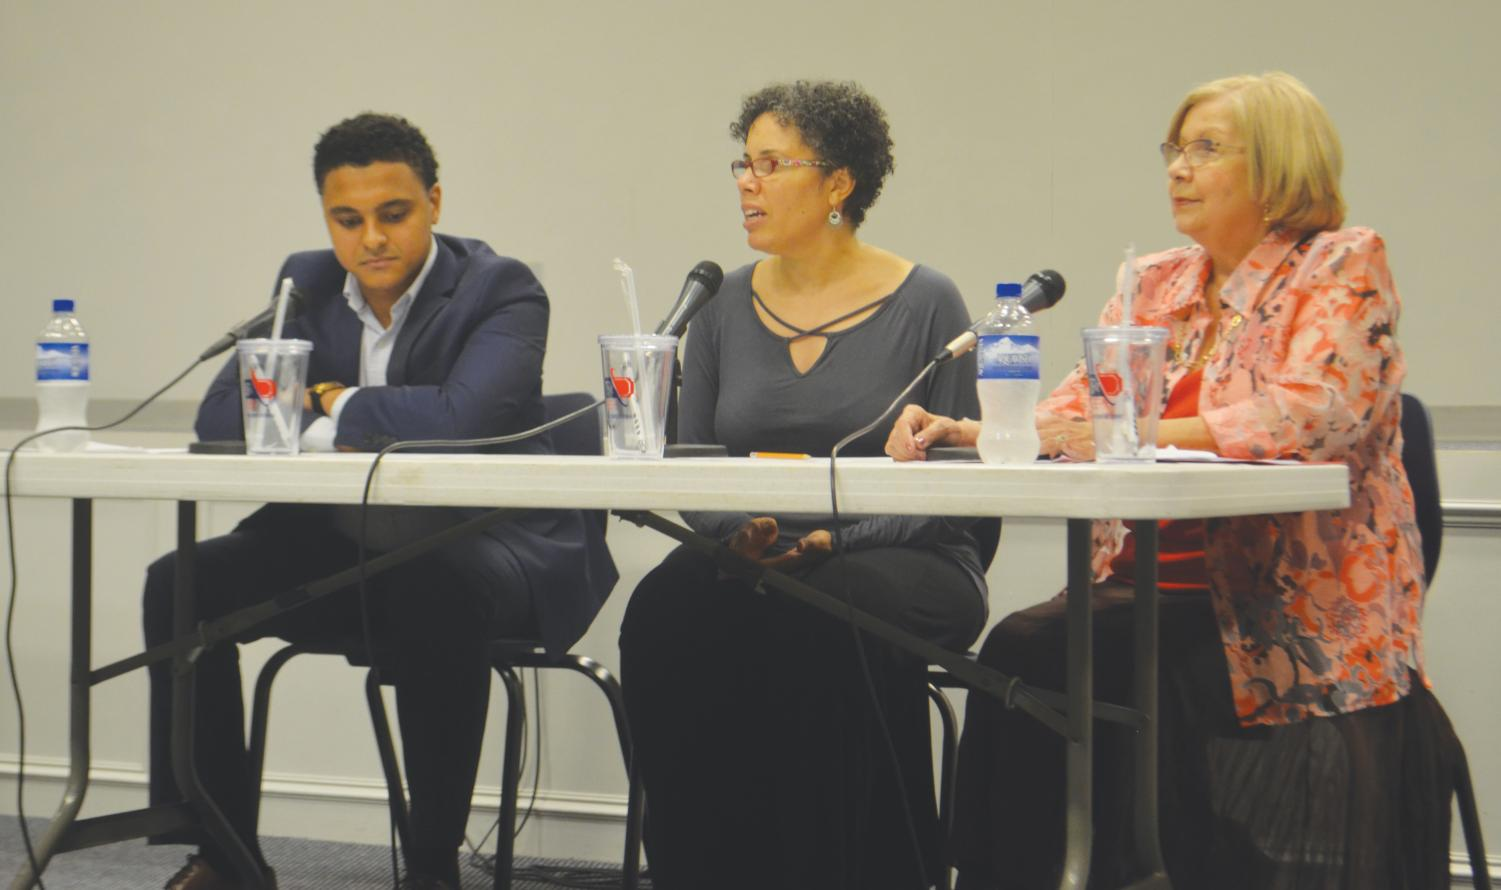 Panelists Michael Youssef, Adalia Ellis-Aroha and Paula McGill speaking to FMU students during an open floor discussion celebrating Hispanic Heritage Month on Sept. 27.